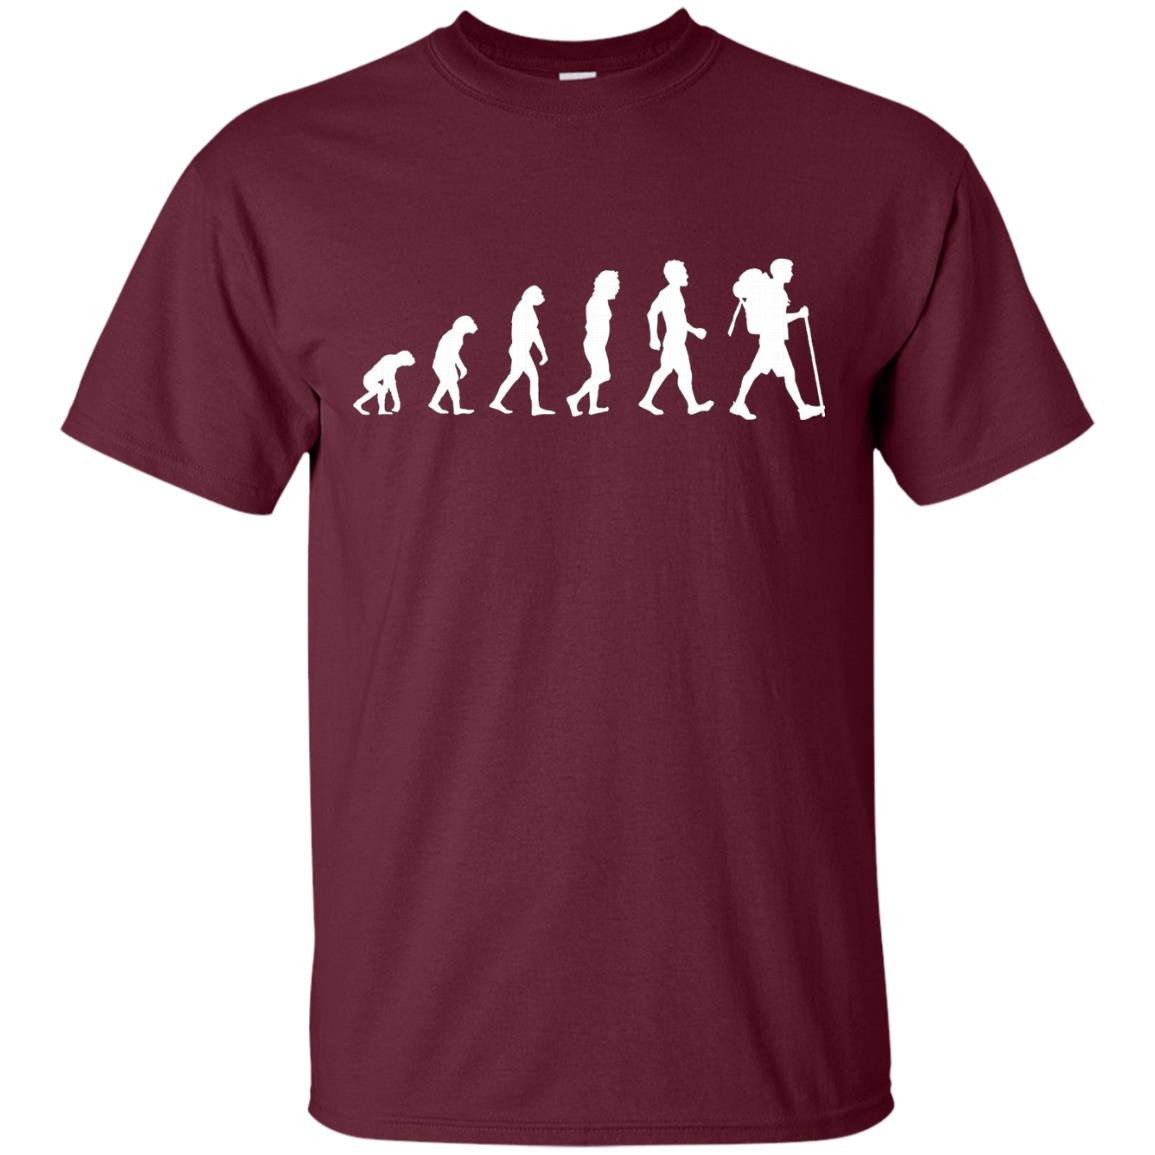 Evolution Of Hiker Funny Hiking Camping T Shirt Gift - T-Shirt